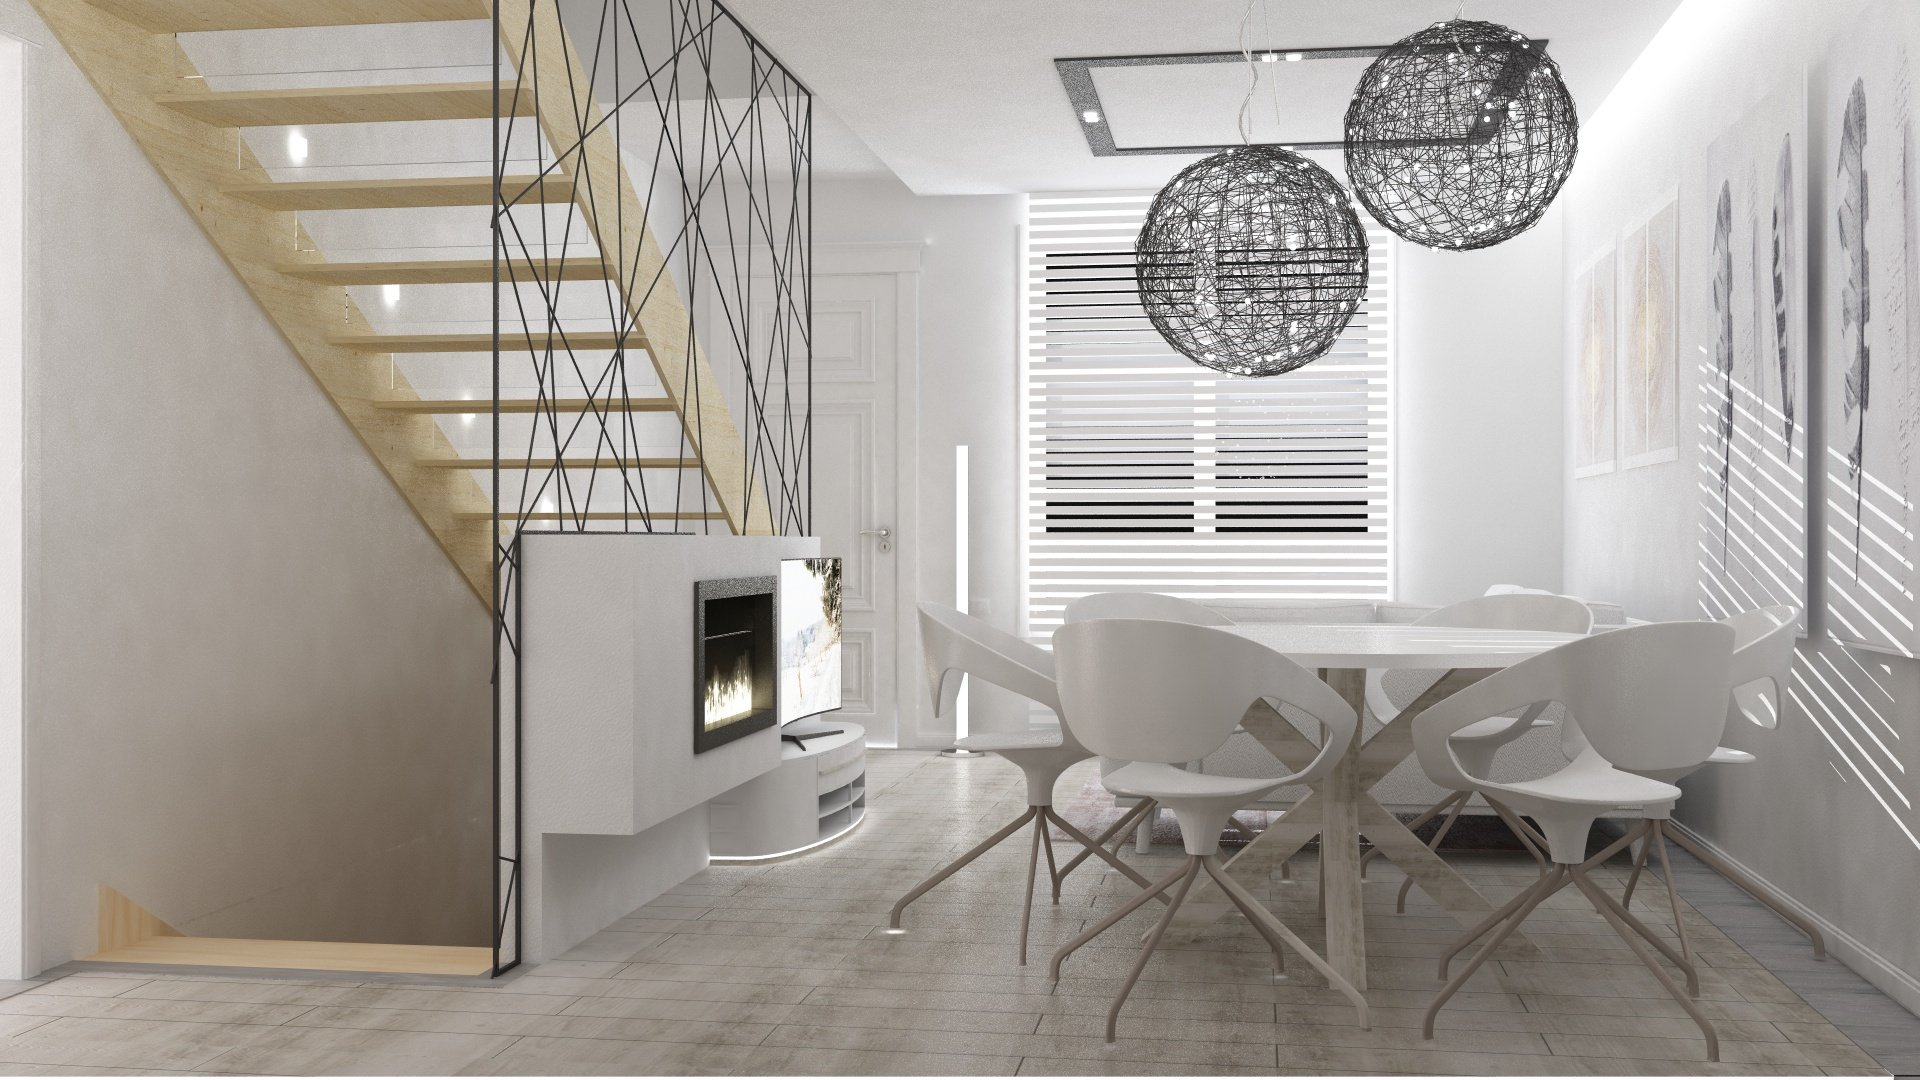 Render Interni Jesolo altra visuale | SP Interior Design